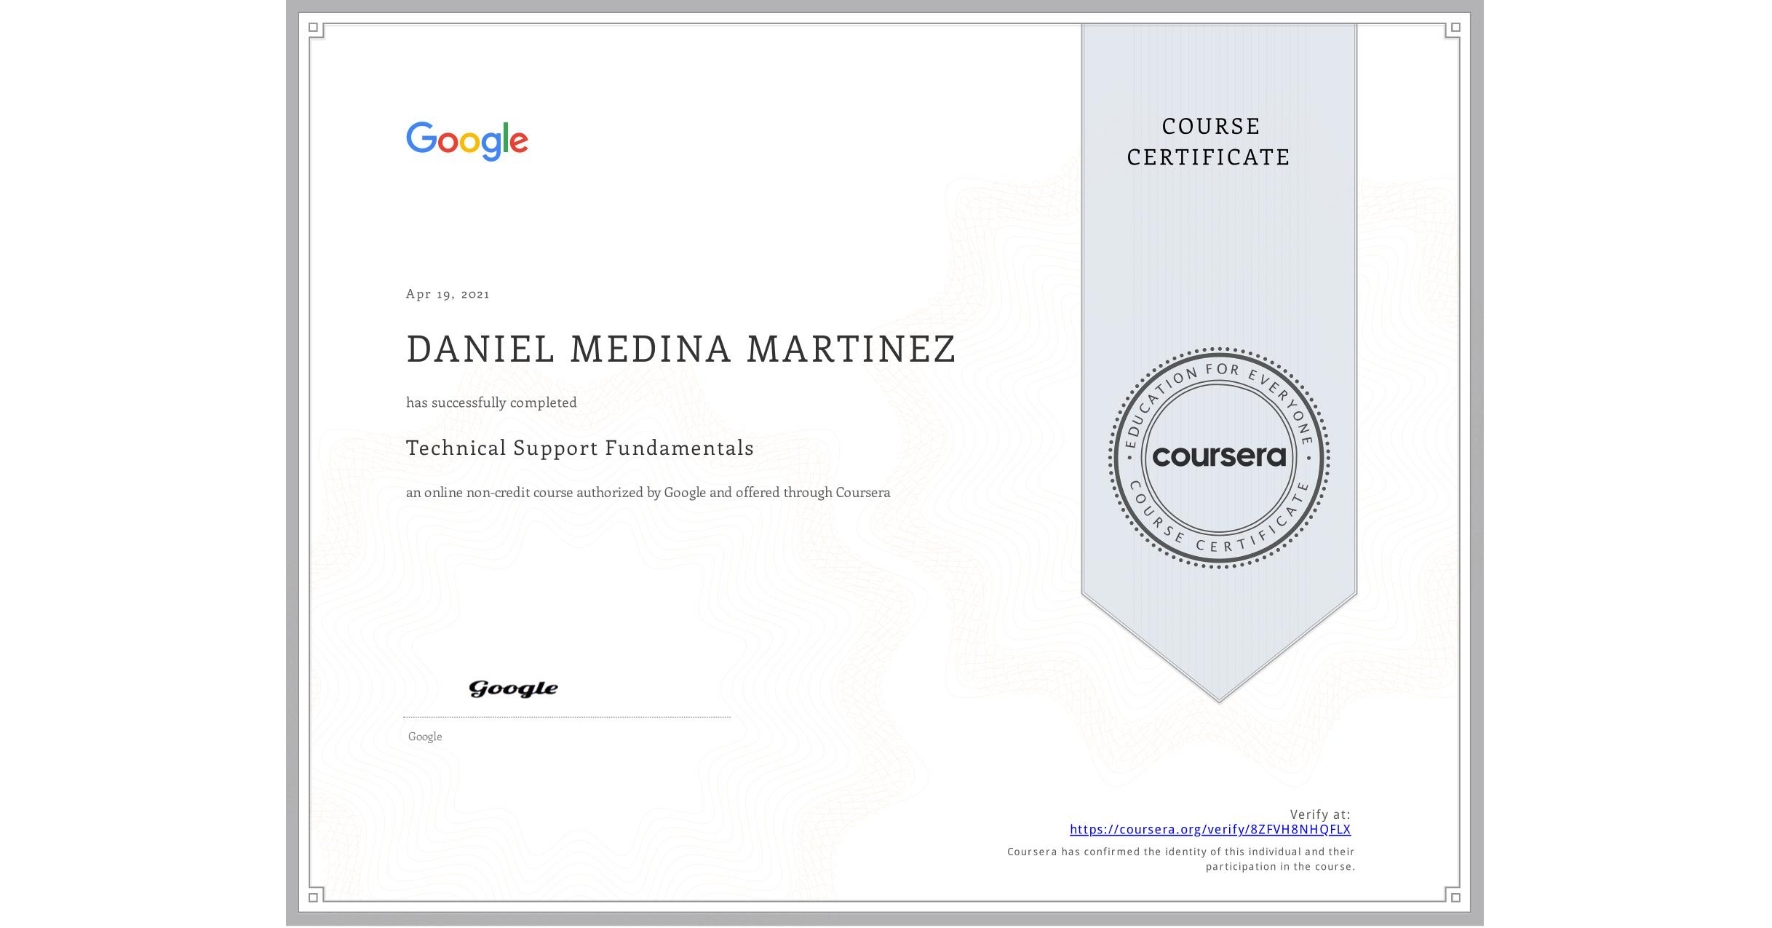 View certificate for DANIEL MEDINA MARTINEZ, Technical Support Fundamentals, an online non-credit course authorized by Google and offered through Coursera